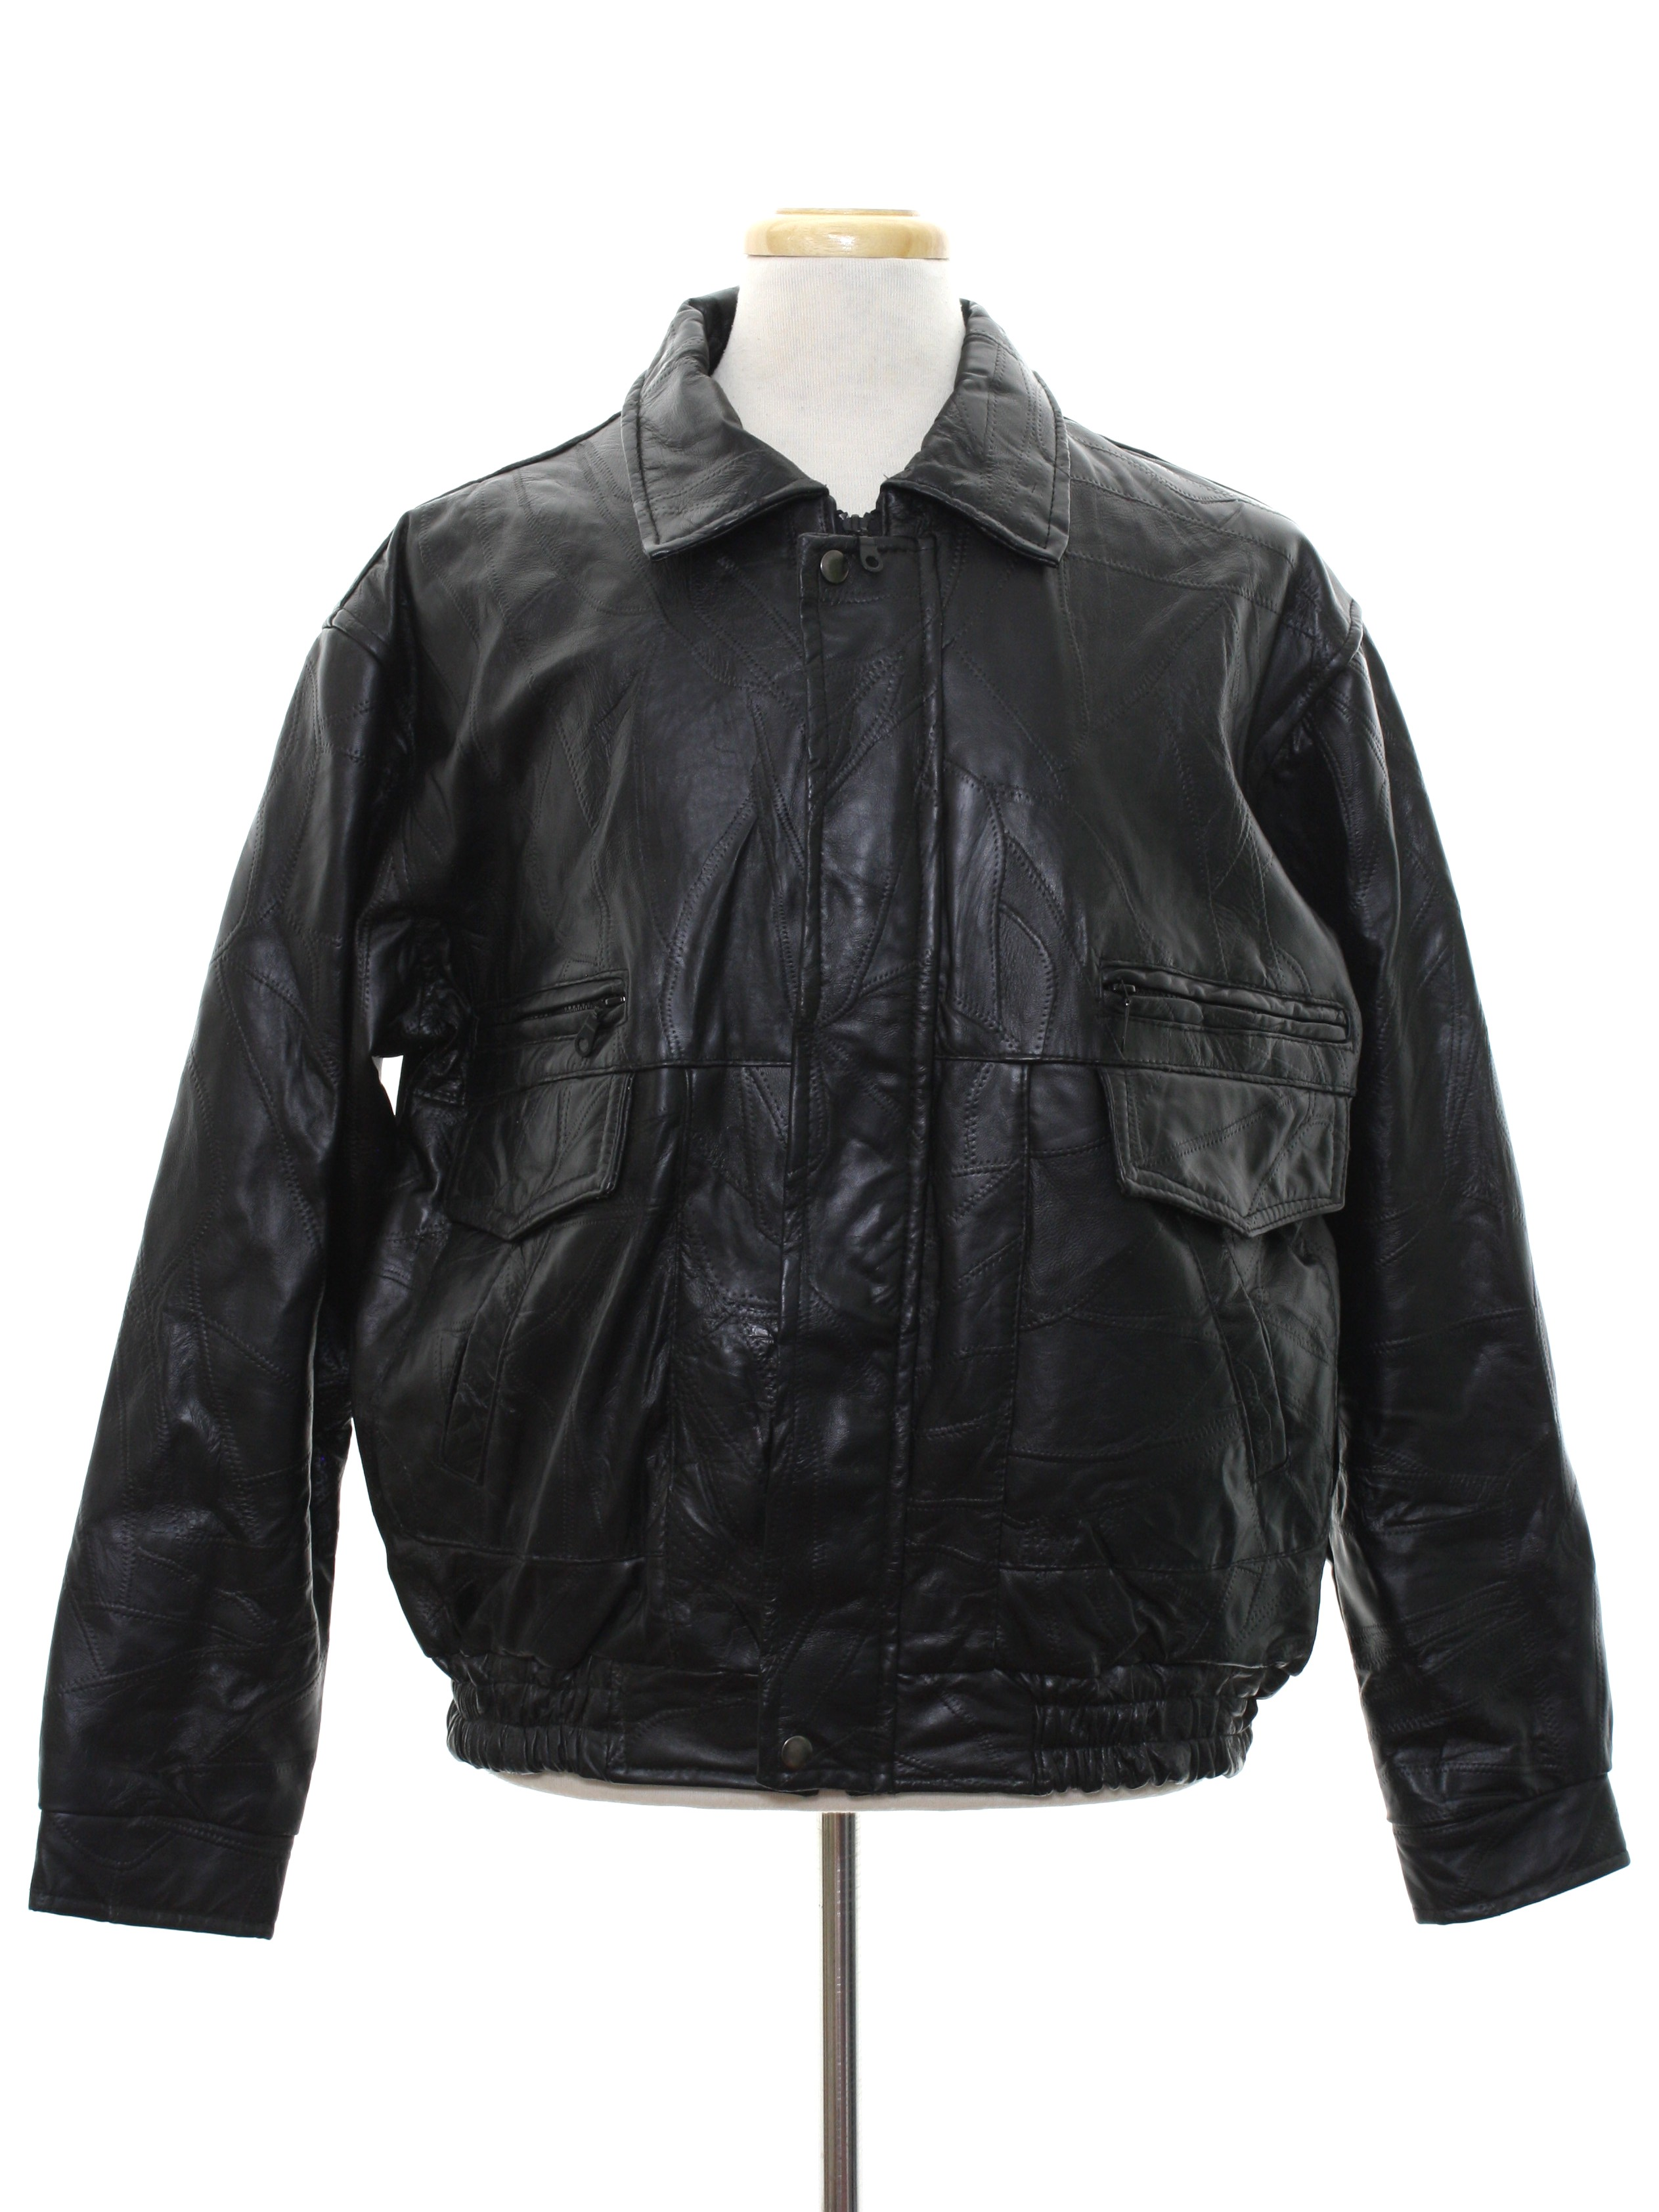 Retro Nineties Leather Jacket 90s Or Newer Leather